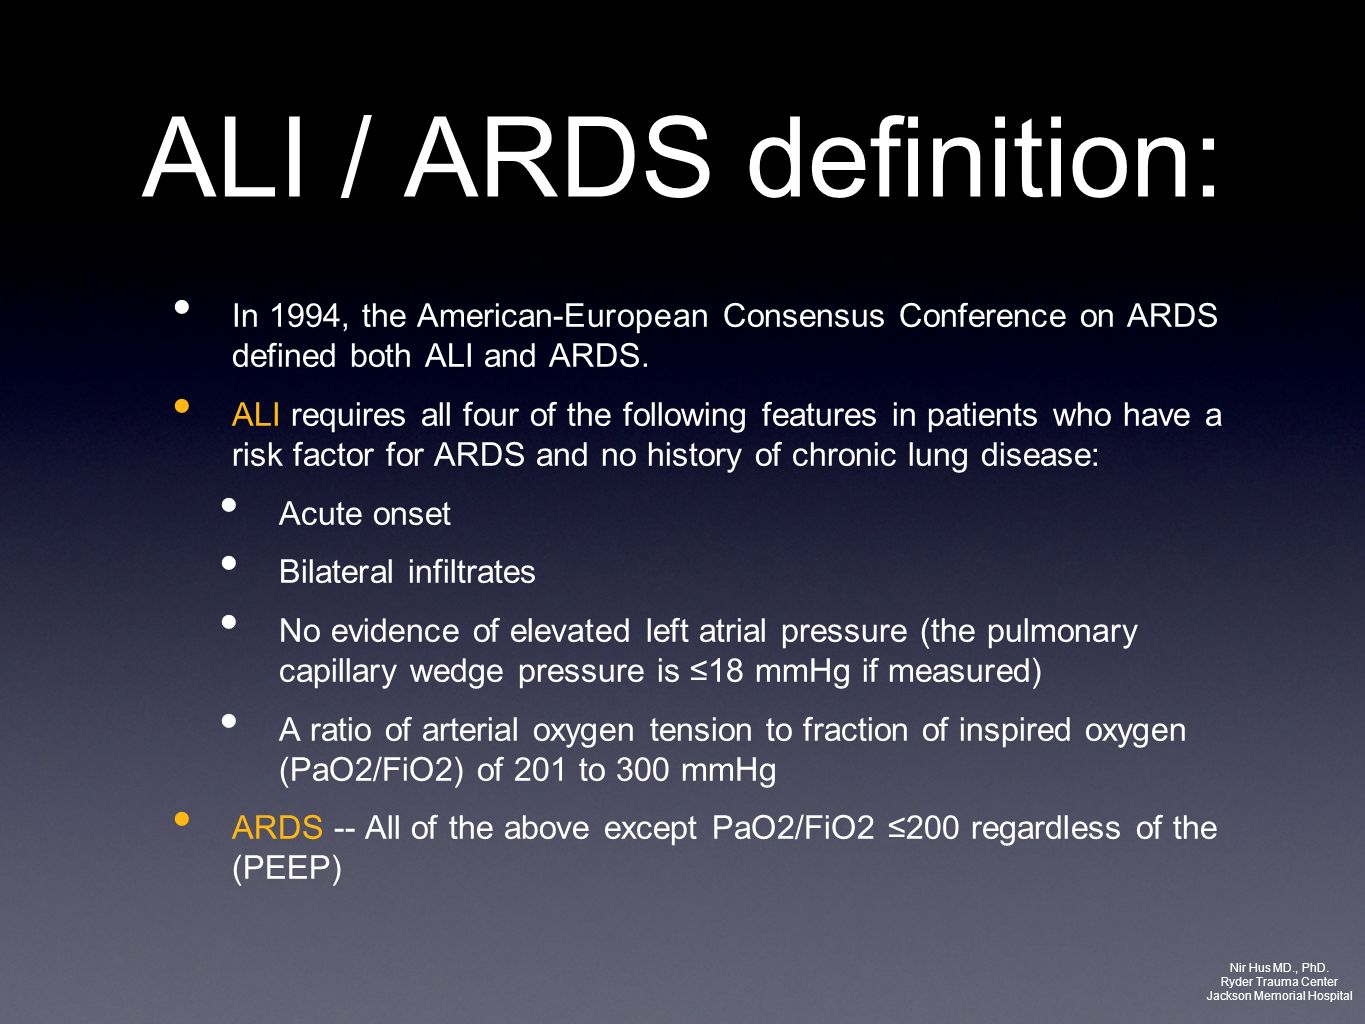 ALI / ARDS definition: In 1994, the American-European Consensus Conference on ARDS defined both ALI and ARDS. ALI requires all four of the following f